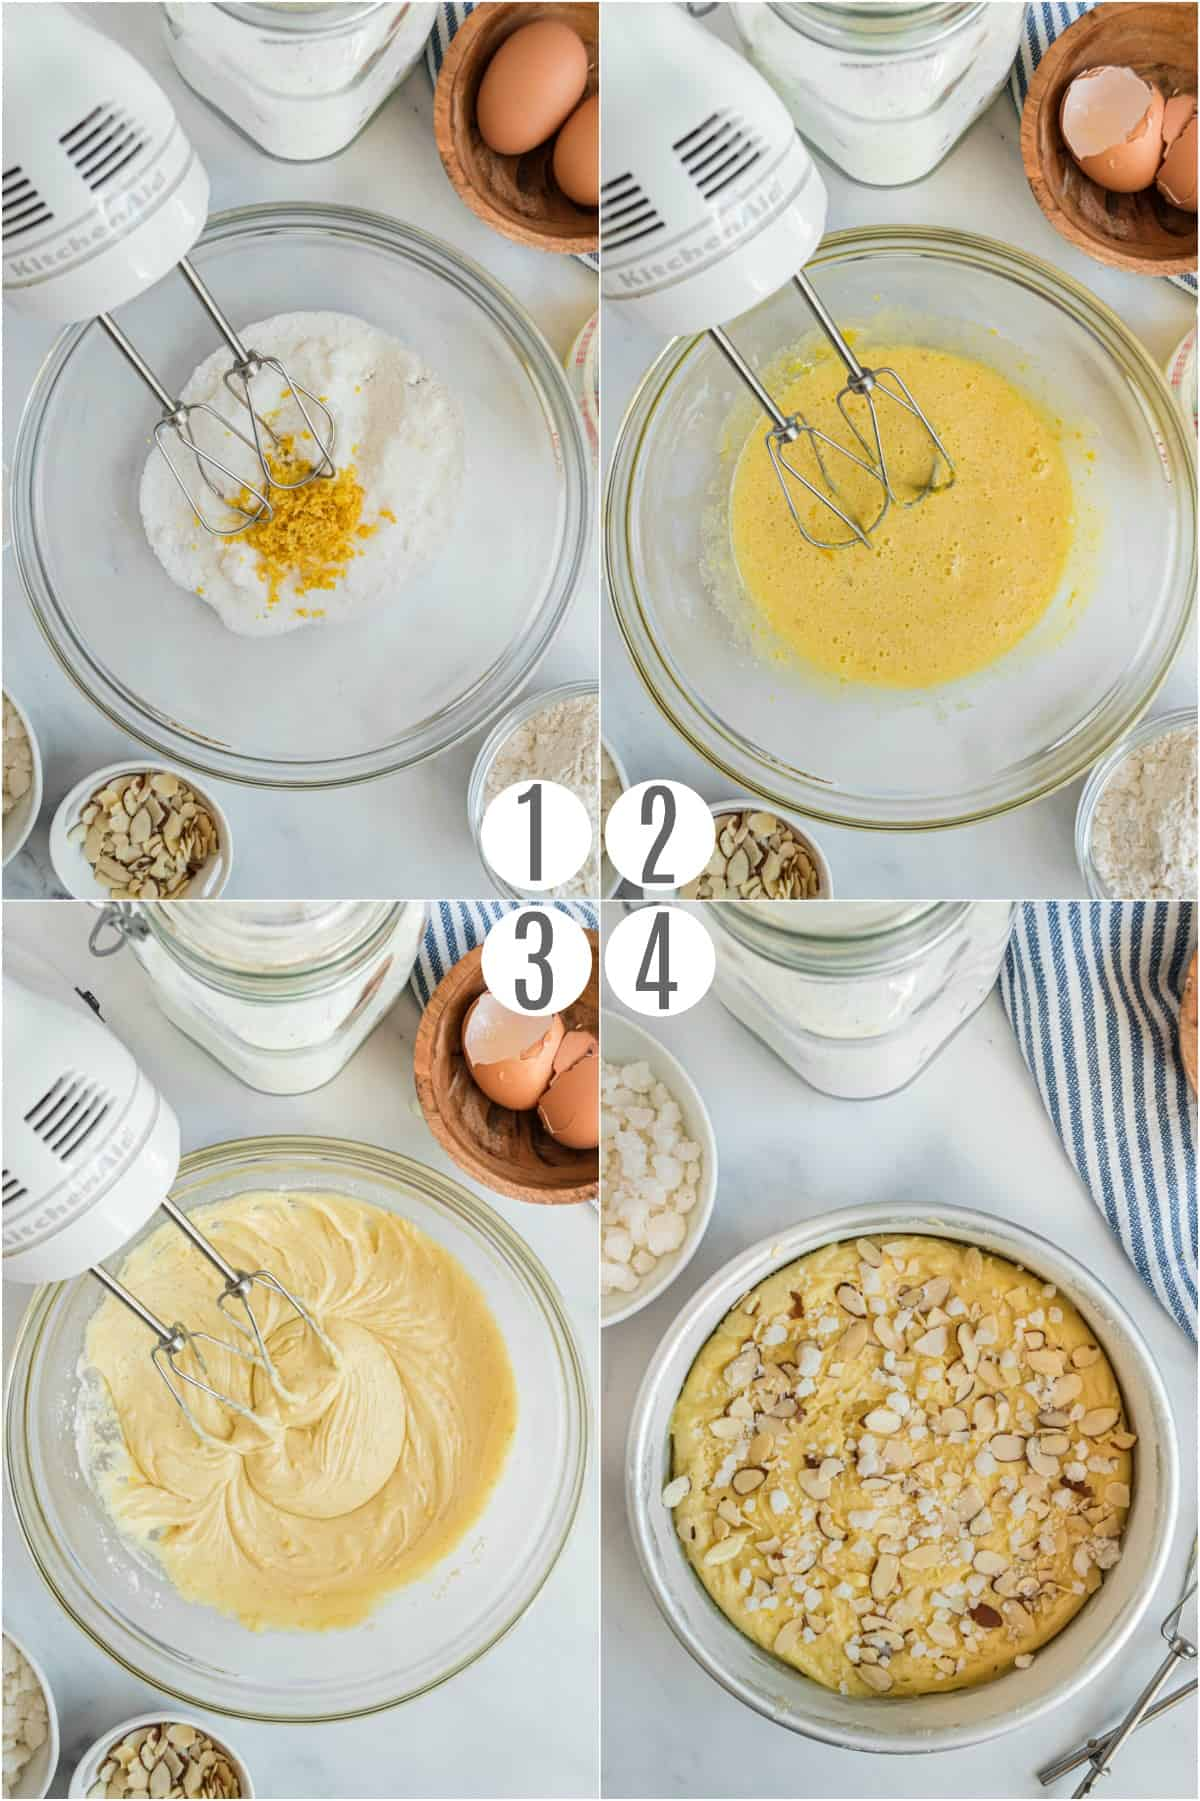 Step by step photos showing how to make swedish almond cake.